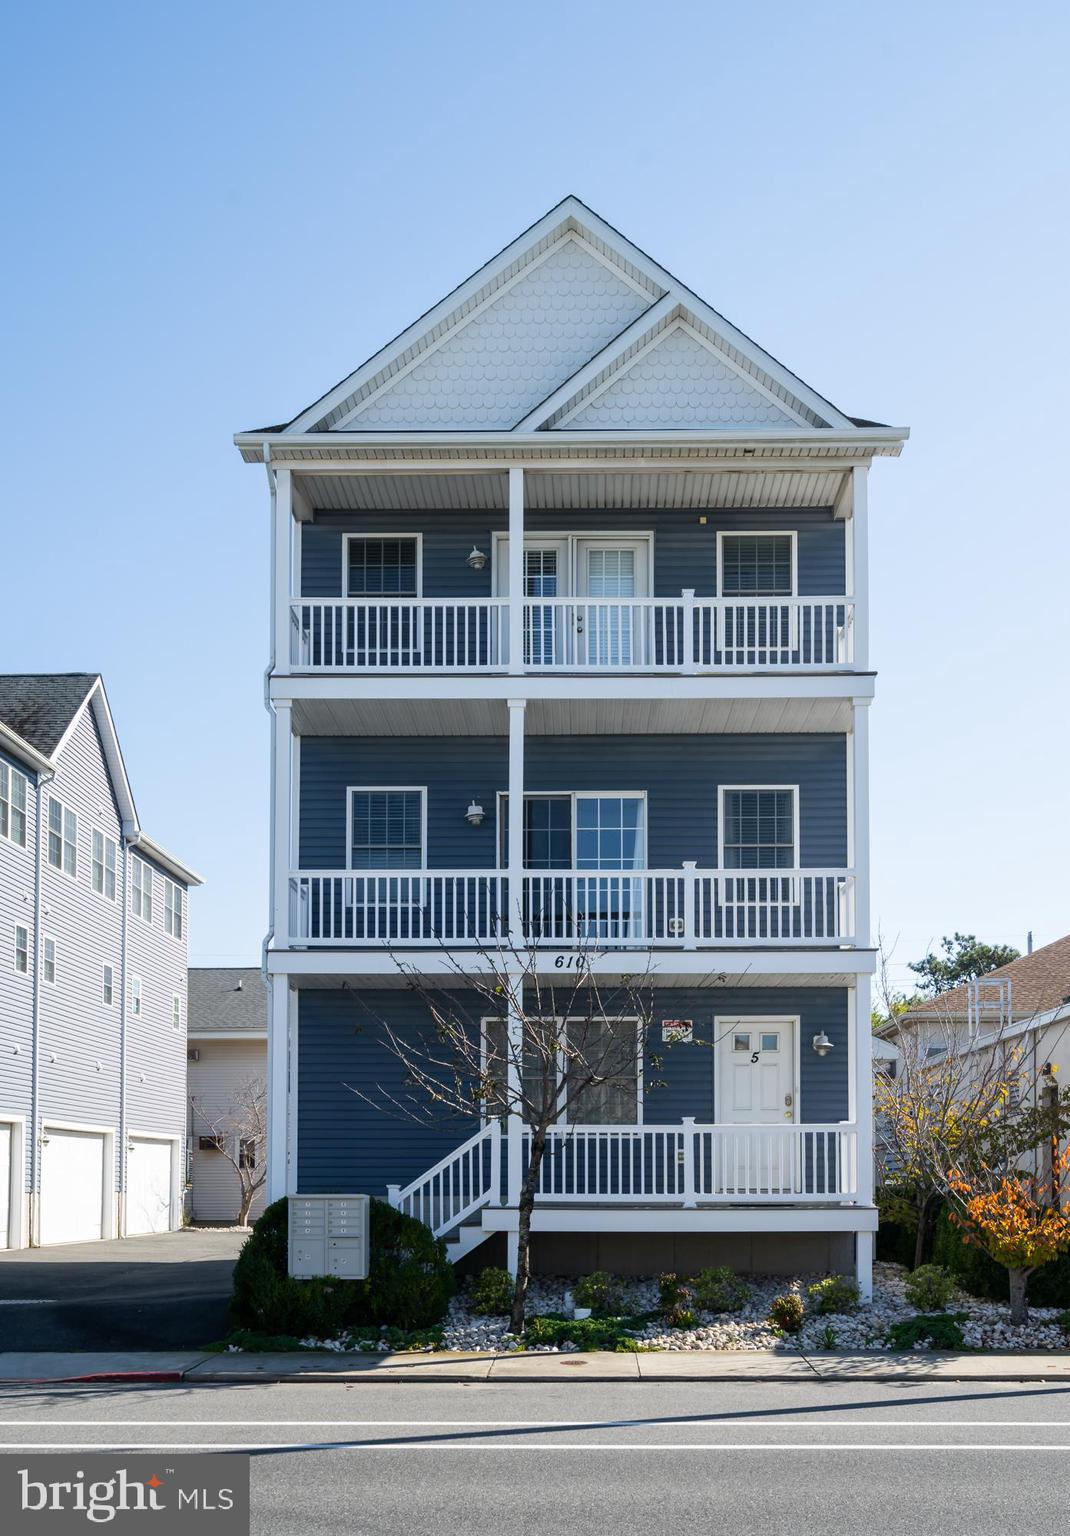 Price Reduced by $40,000.  Spacious single family home located just blocks from Ocean City, Maryland's Famous Boardwalk and Beach. This 3 story home features a bright and open floor plan with vaulted ceilings, two master suites, and multi-level decking. Relax by the South Island Villas community pool as this complex has only 5 units. There is plenty of room for your vehicles with a 2 car rear entry garage, along with off-street parking. Enjoy two free fishing piers, as well as the Downtown Recreation Complex along the bay where you find a ballfield, playground, basketball courts, tennis courts, and the Ocean Bowl Skate Park. Restaurants, shopping, amusements, and the White Marlin Open fishing tournament are all within a short distance. This home has never been rented. The projected rental income is $40,000 + per year.